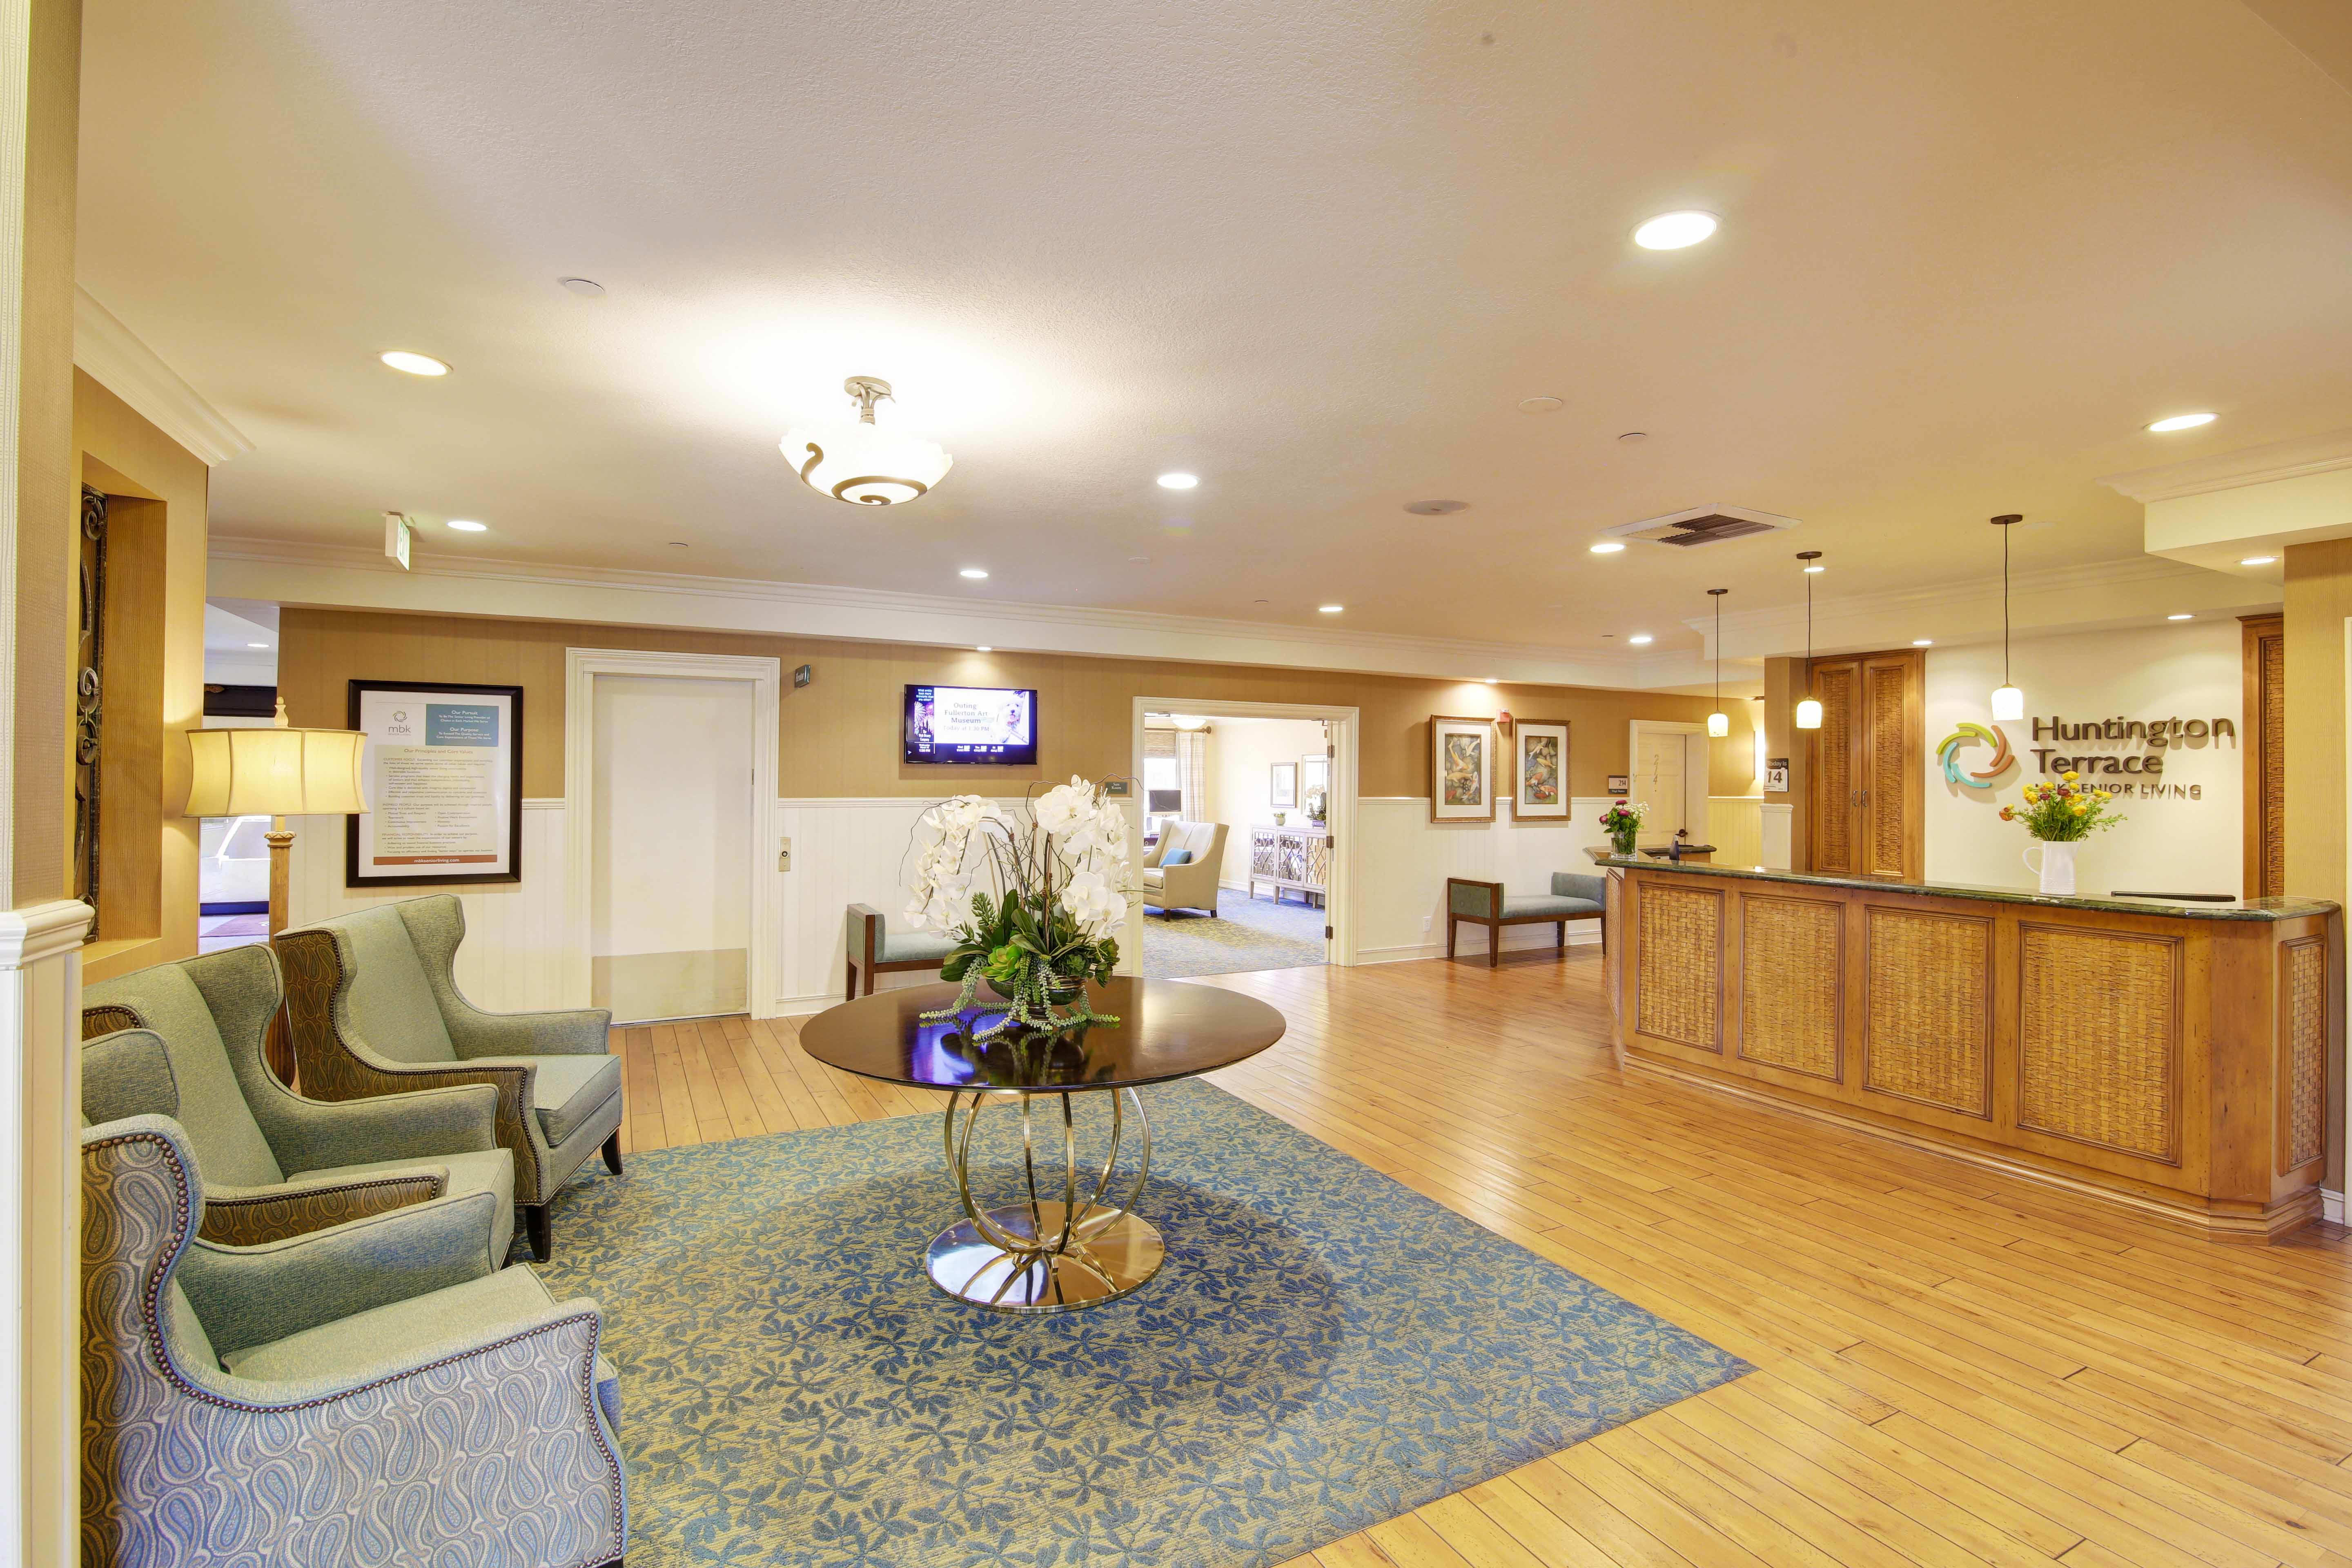 Contact the senior living community in Huntington Beach